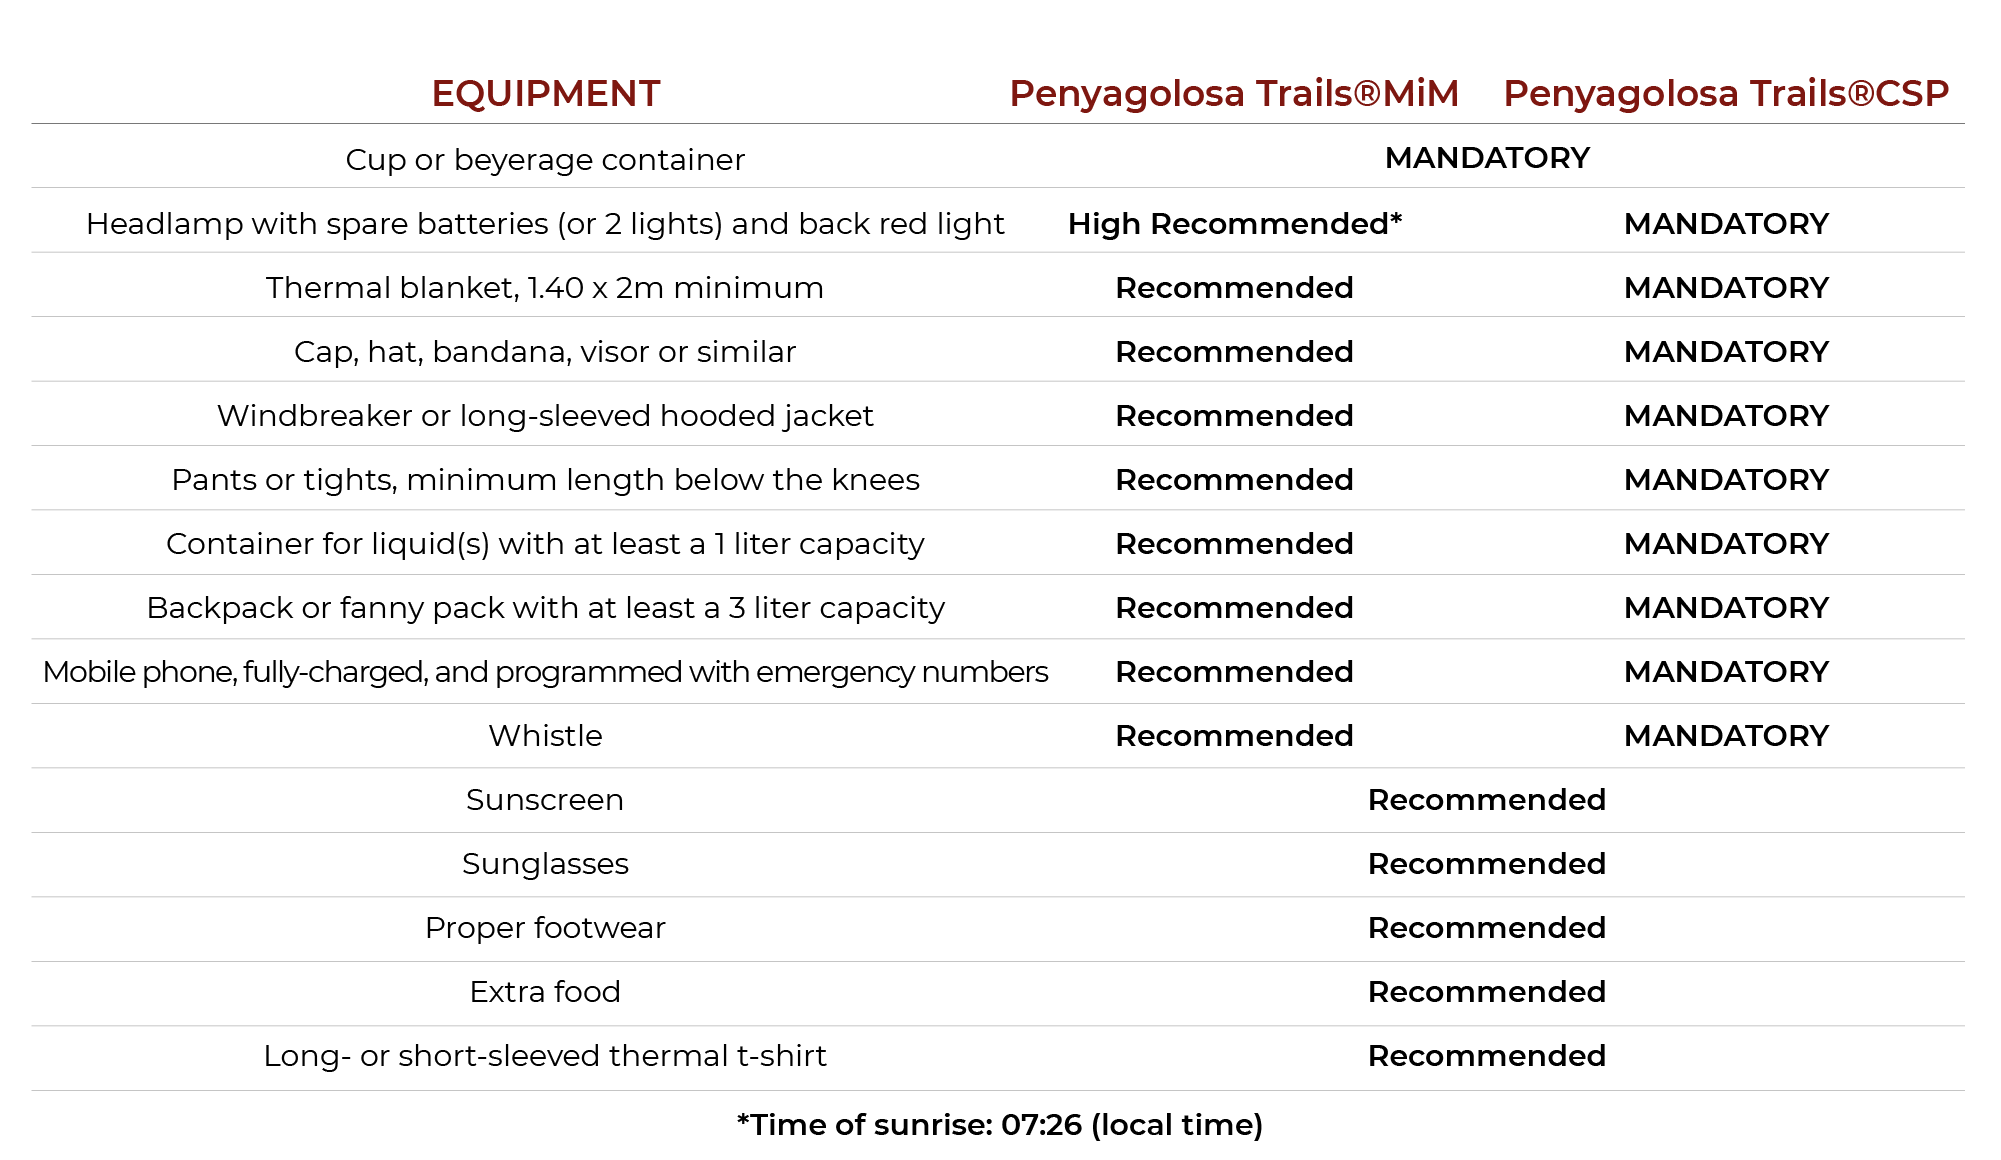 regulations-recommended-equipment-en-2019